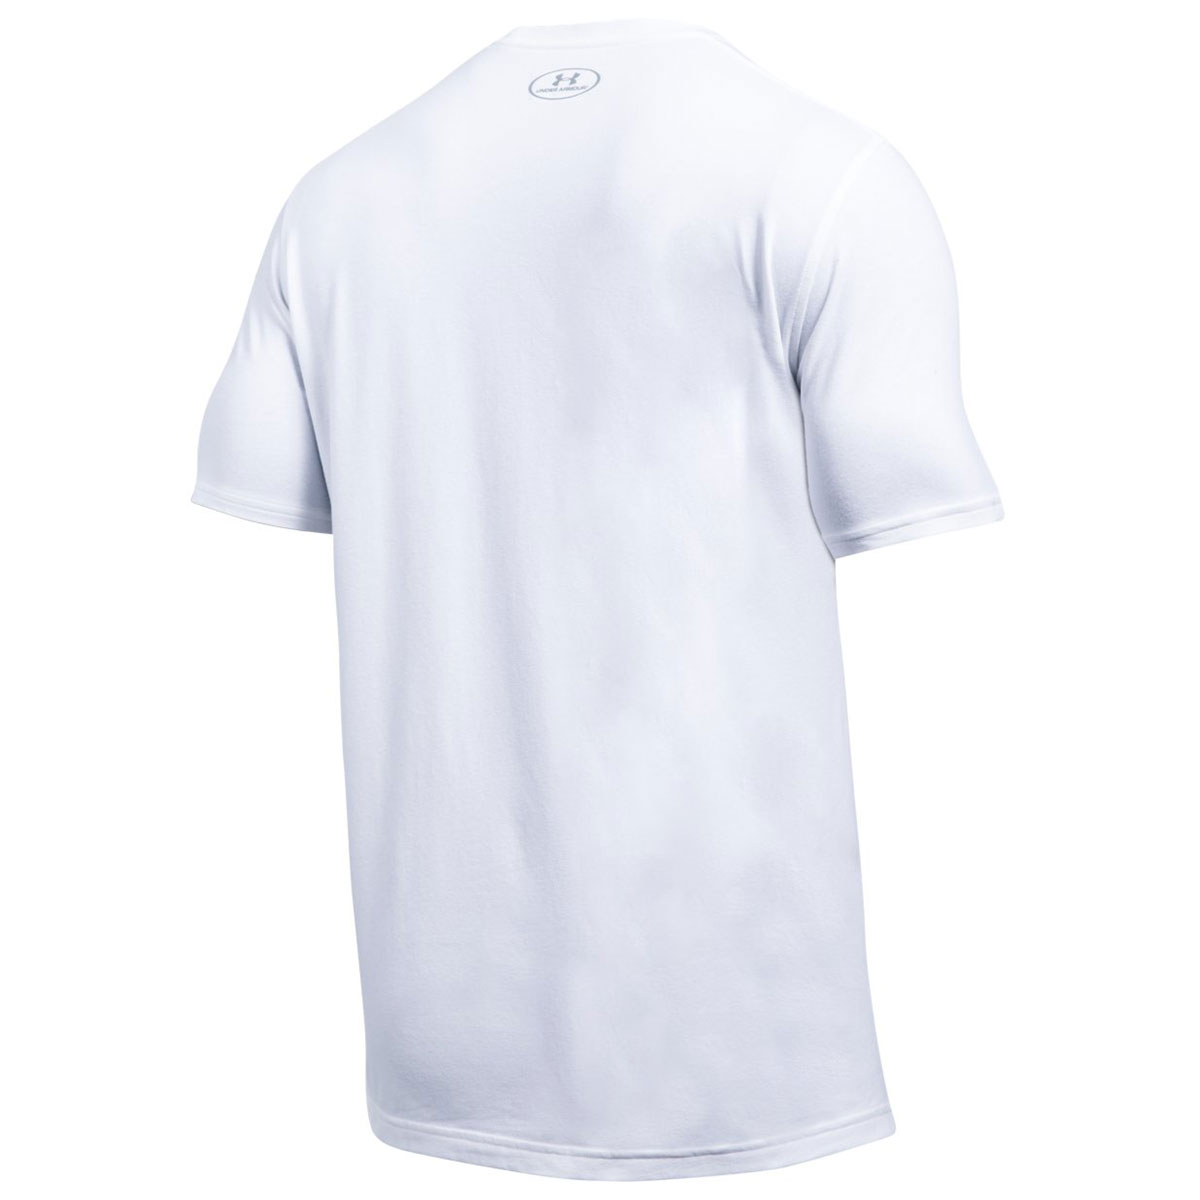 Under-Armour-Mens-UA-I-Will-Short-Sleeve-Charged-Cotton-Training-T-Shirt thumbnail 9